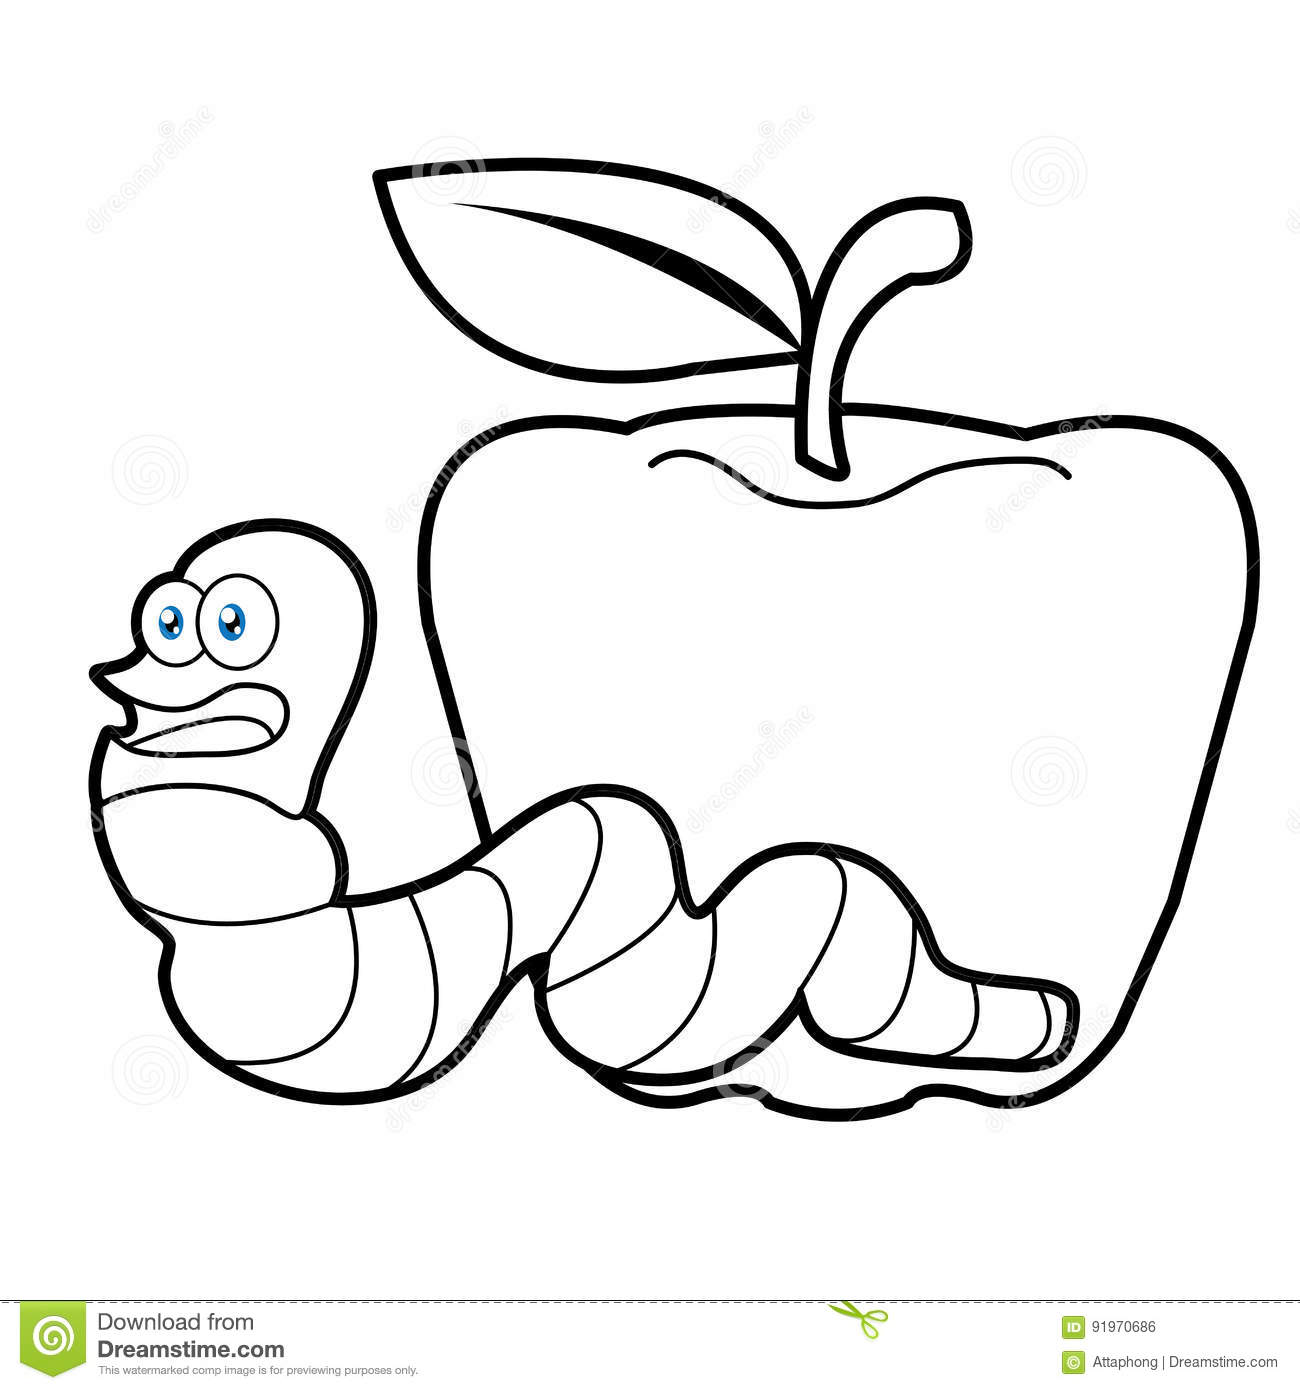 Book worm coloring pages - Larva Worm And Apple Cartoon Coloring Page For Toddle